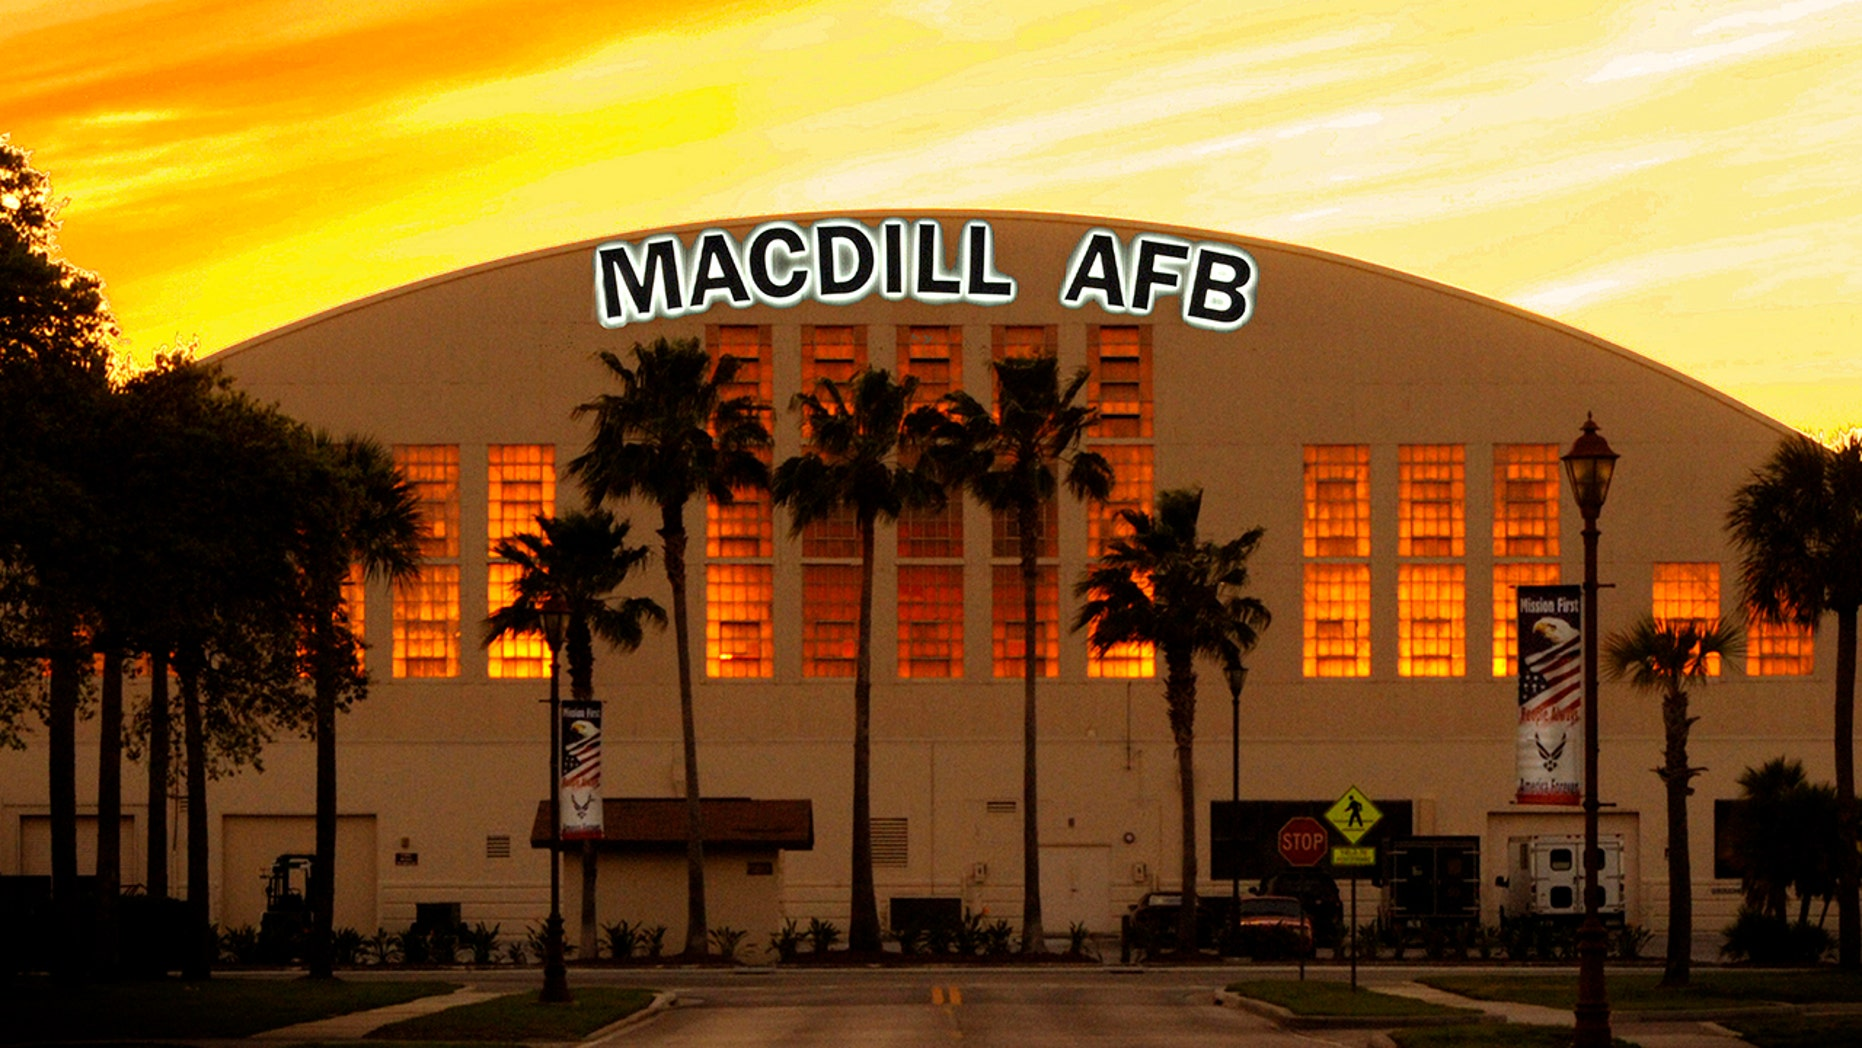 Bugs, leaks and mushrooms growing out of the carpet are some of the issues families who have lived at MacDill Air Force Base in Tampa say they have encountered in their homes.